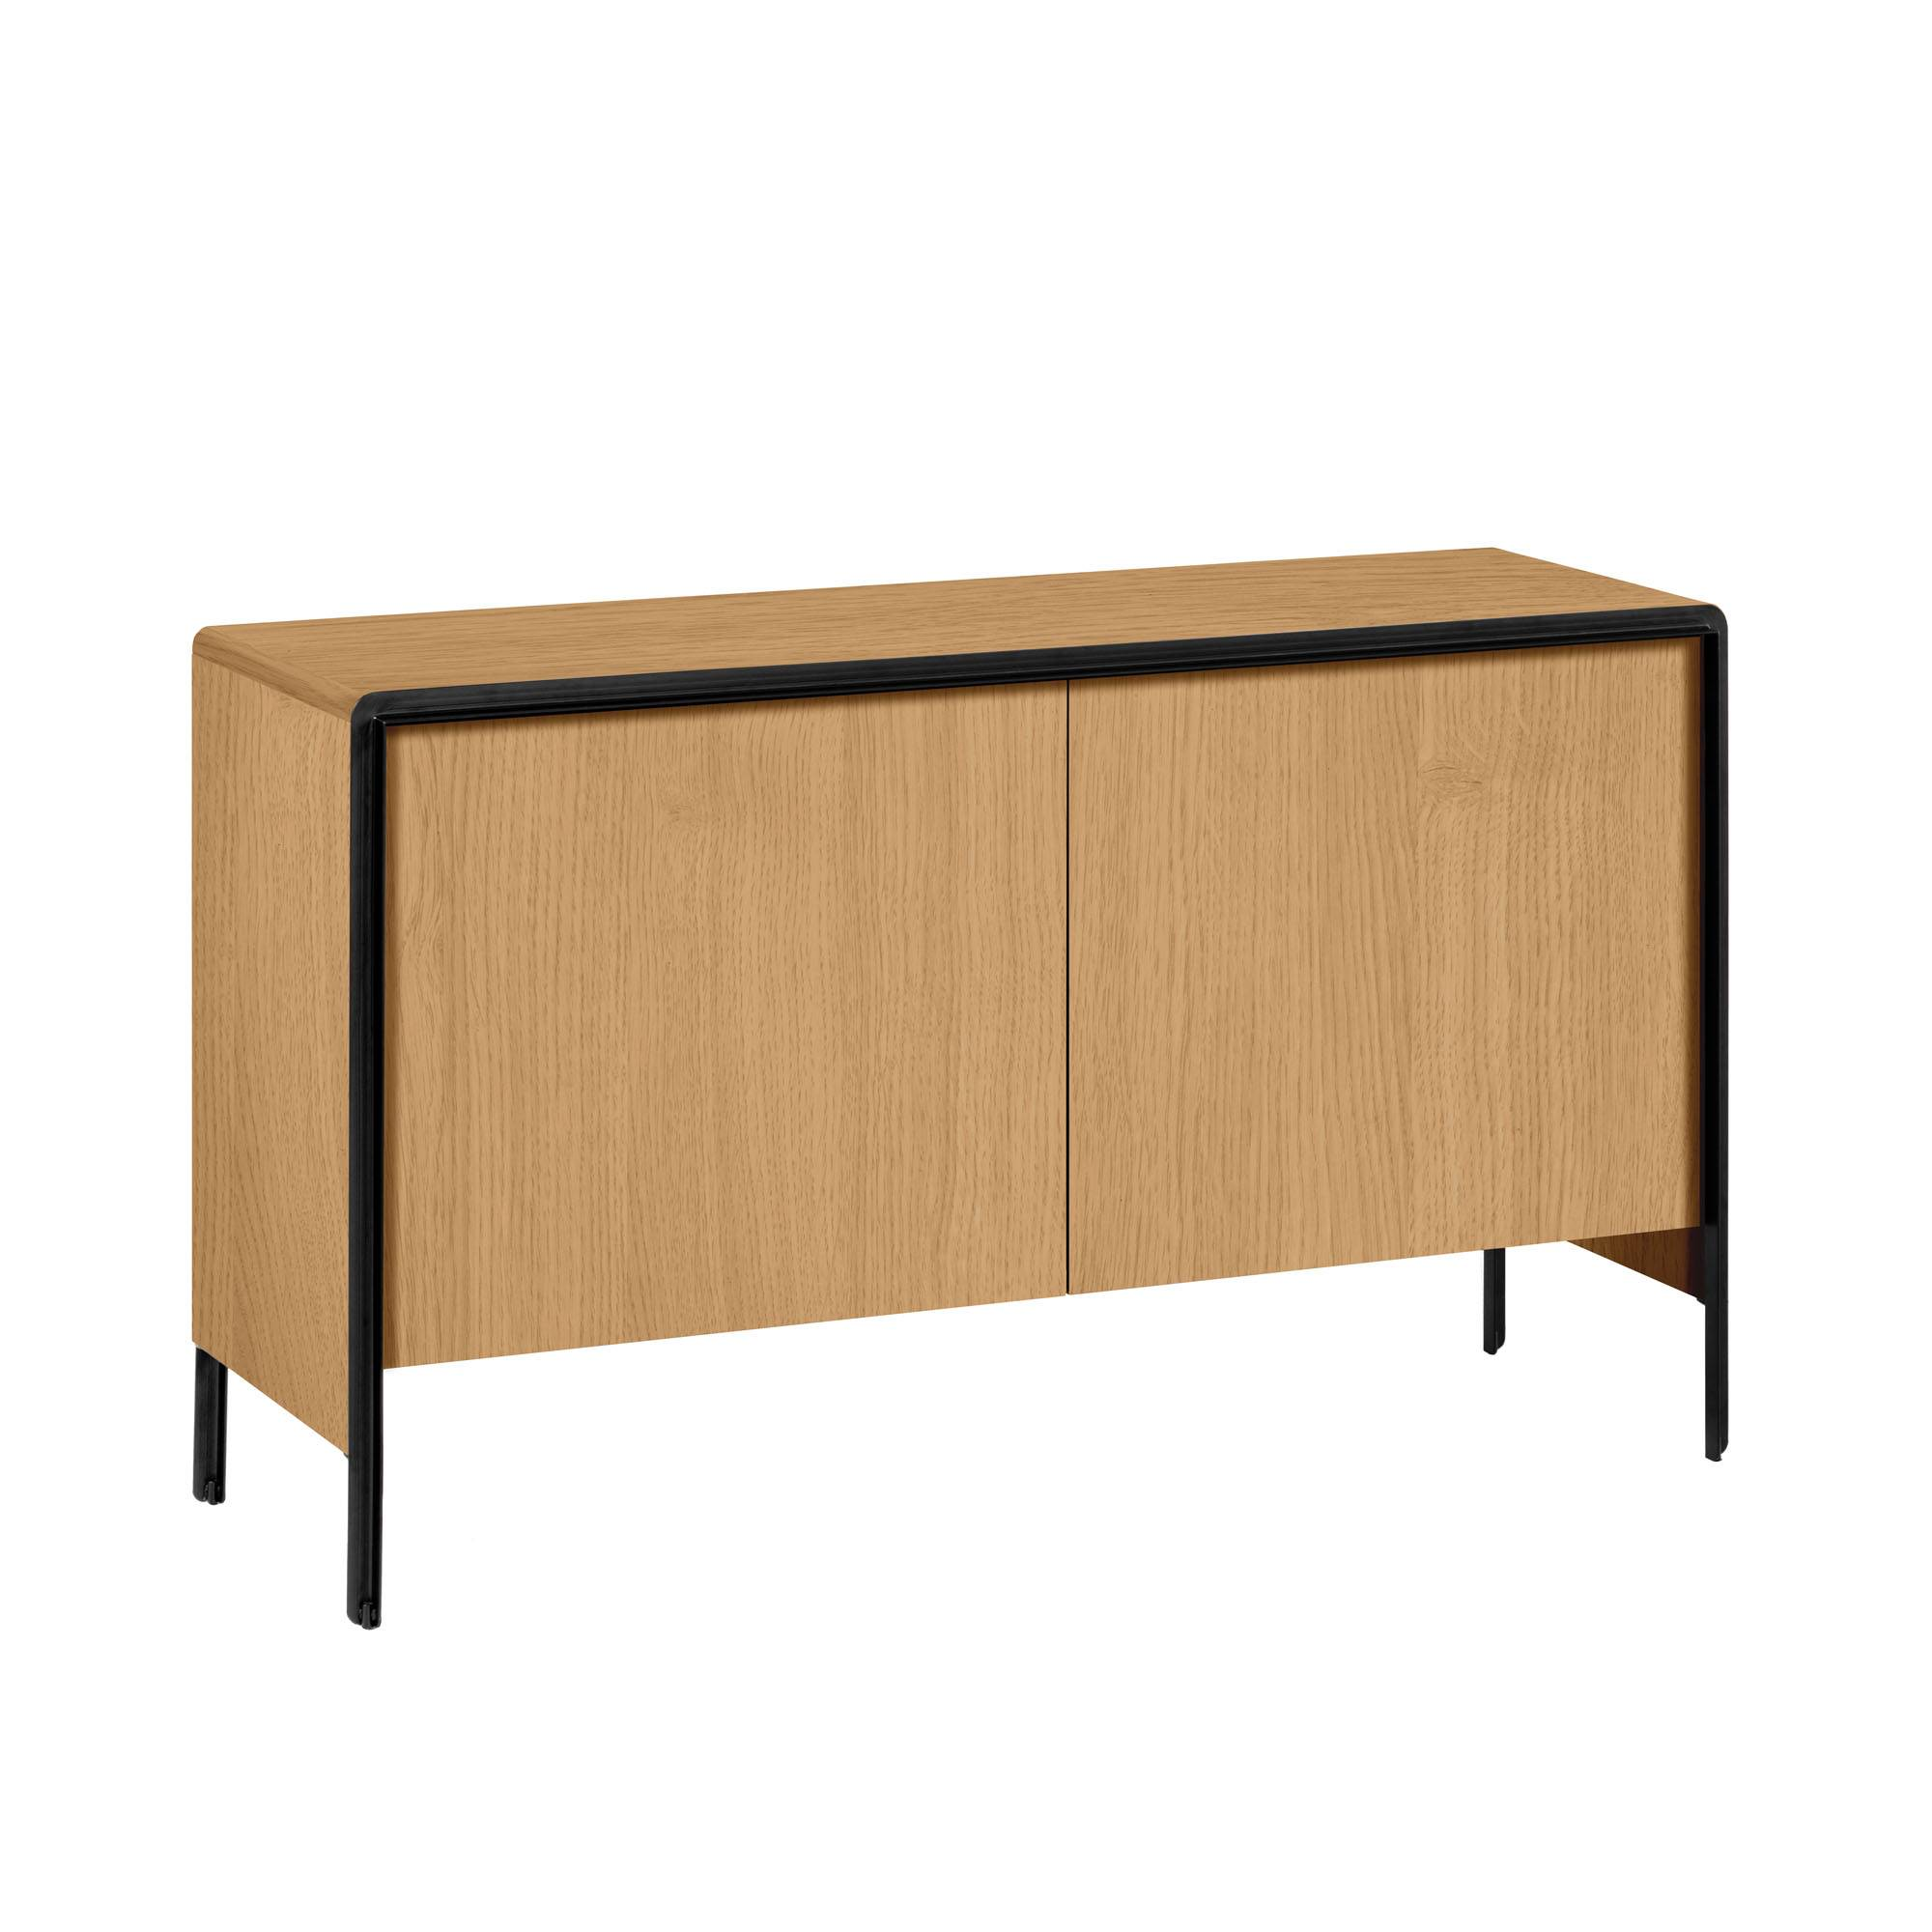 Kave Home Credenza Nadyria 140 x 82 cm in rovere